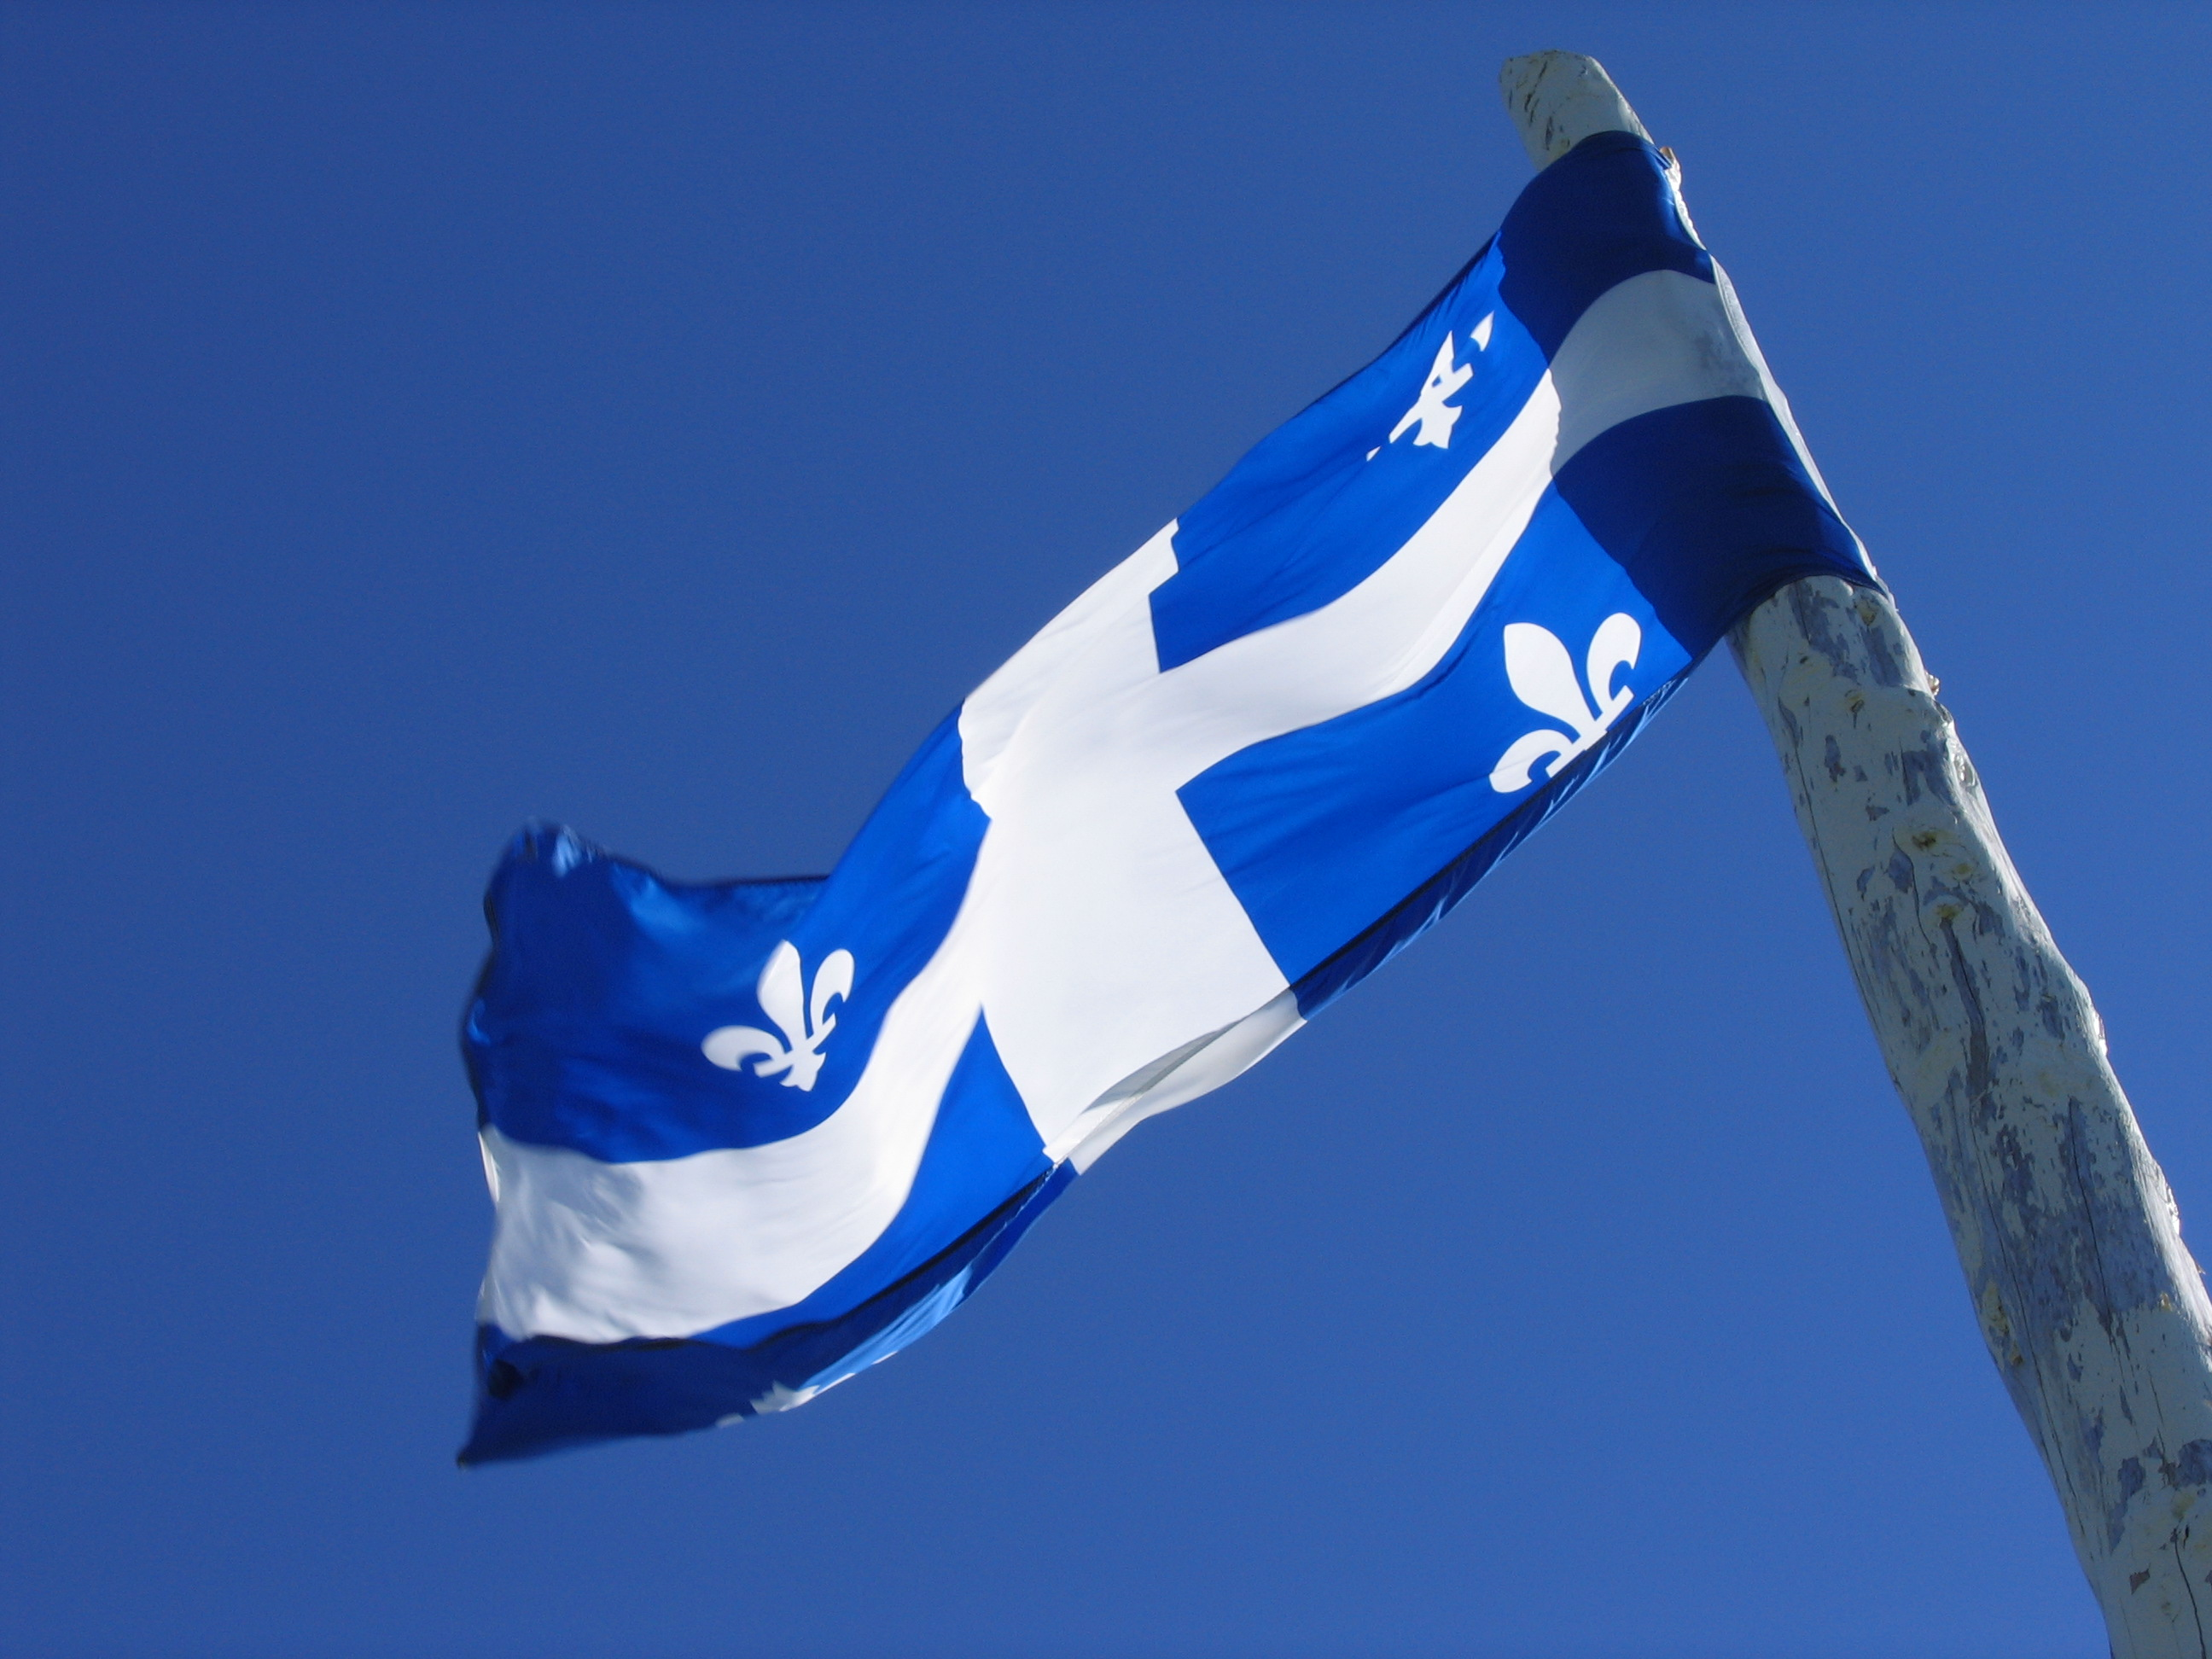 Drapeau du Québec au vent (Quebec flag flying in the wind).jpg